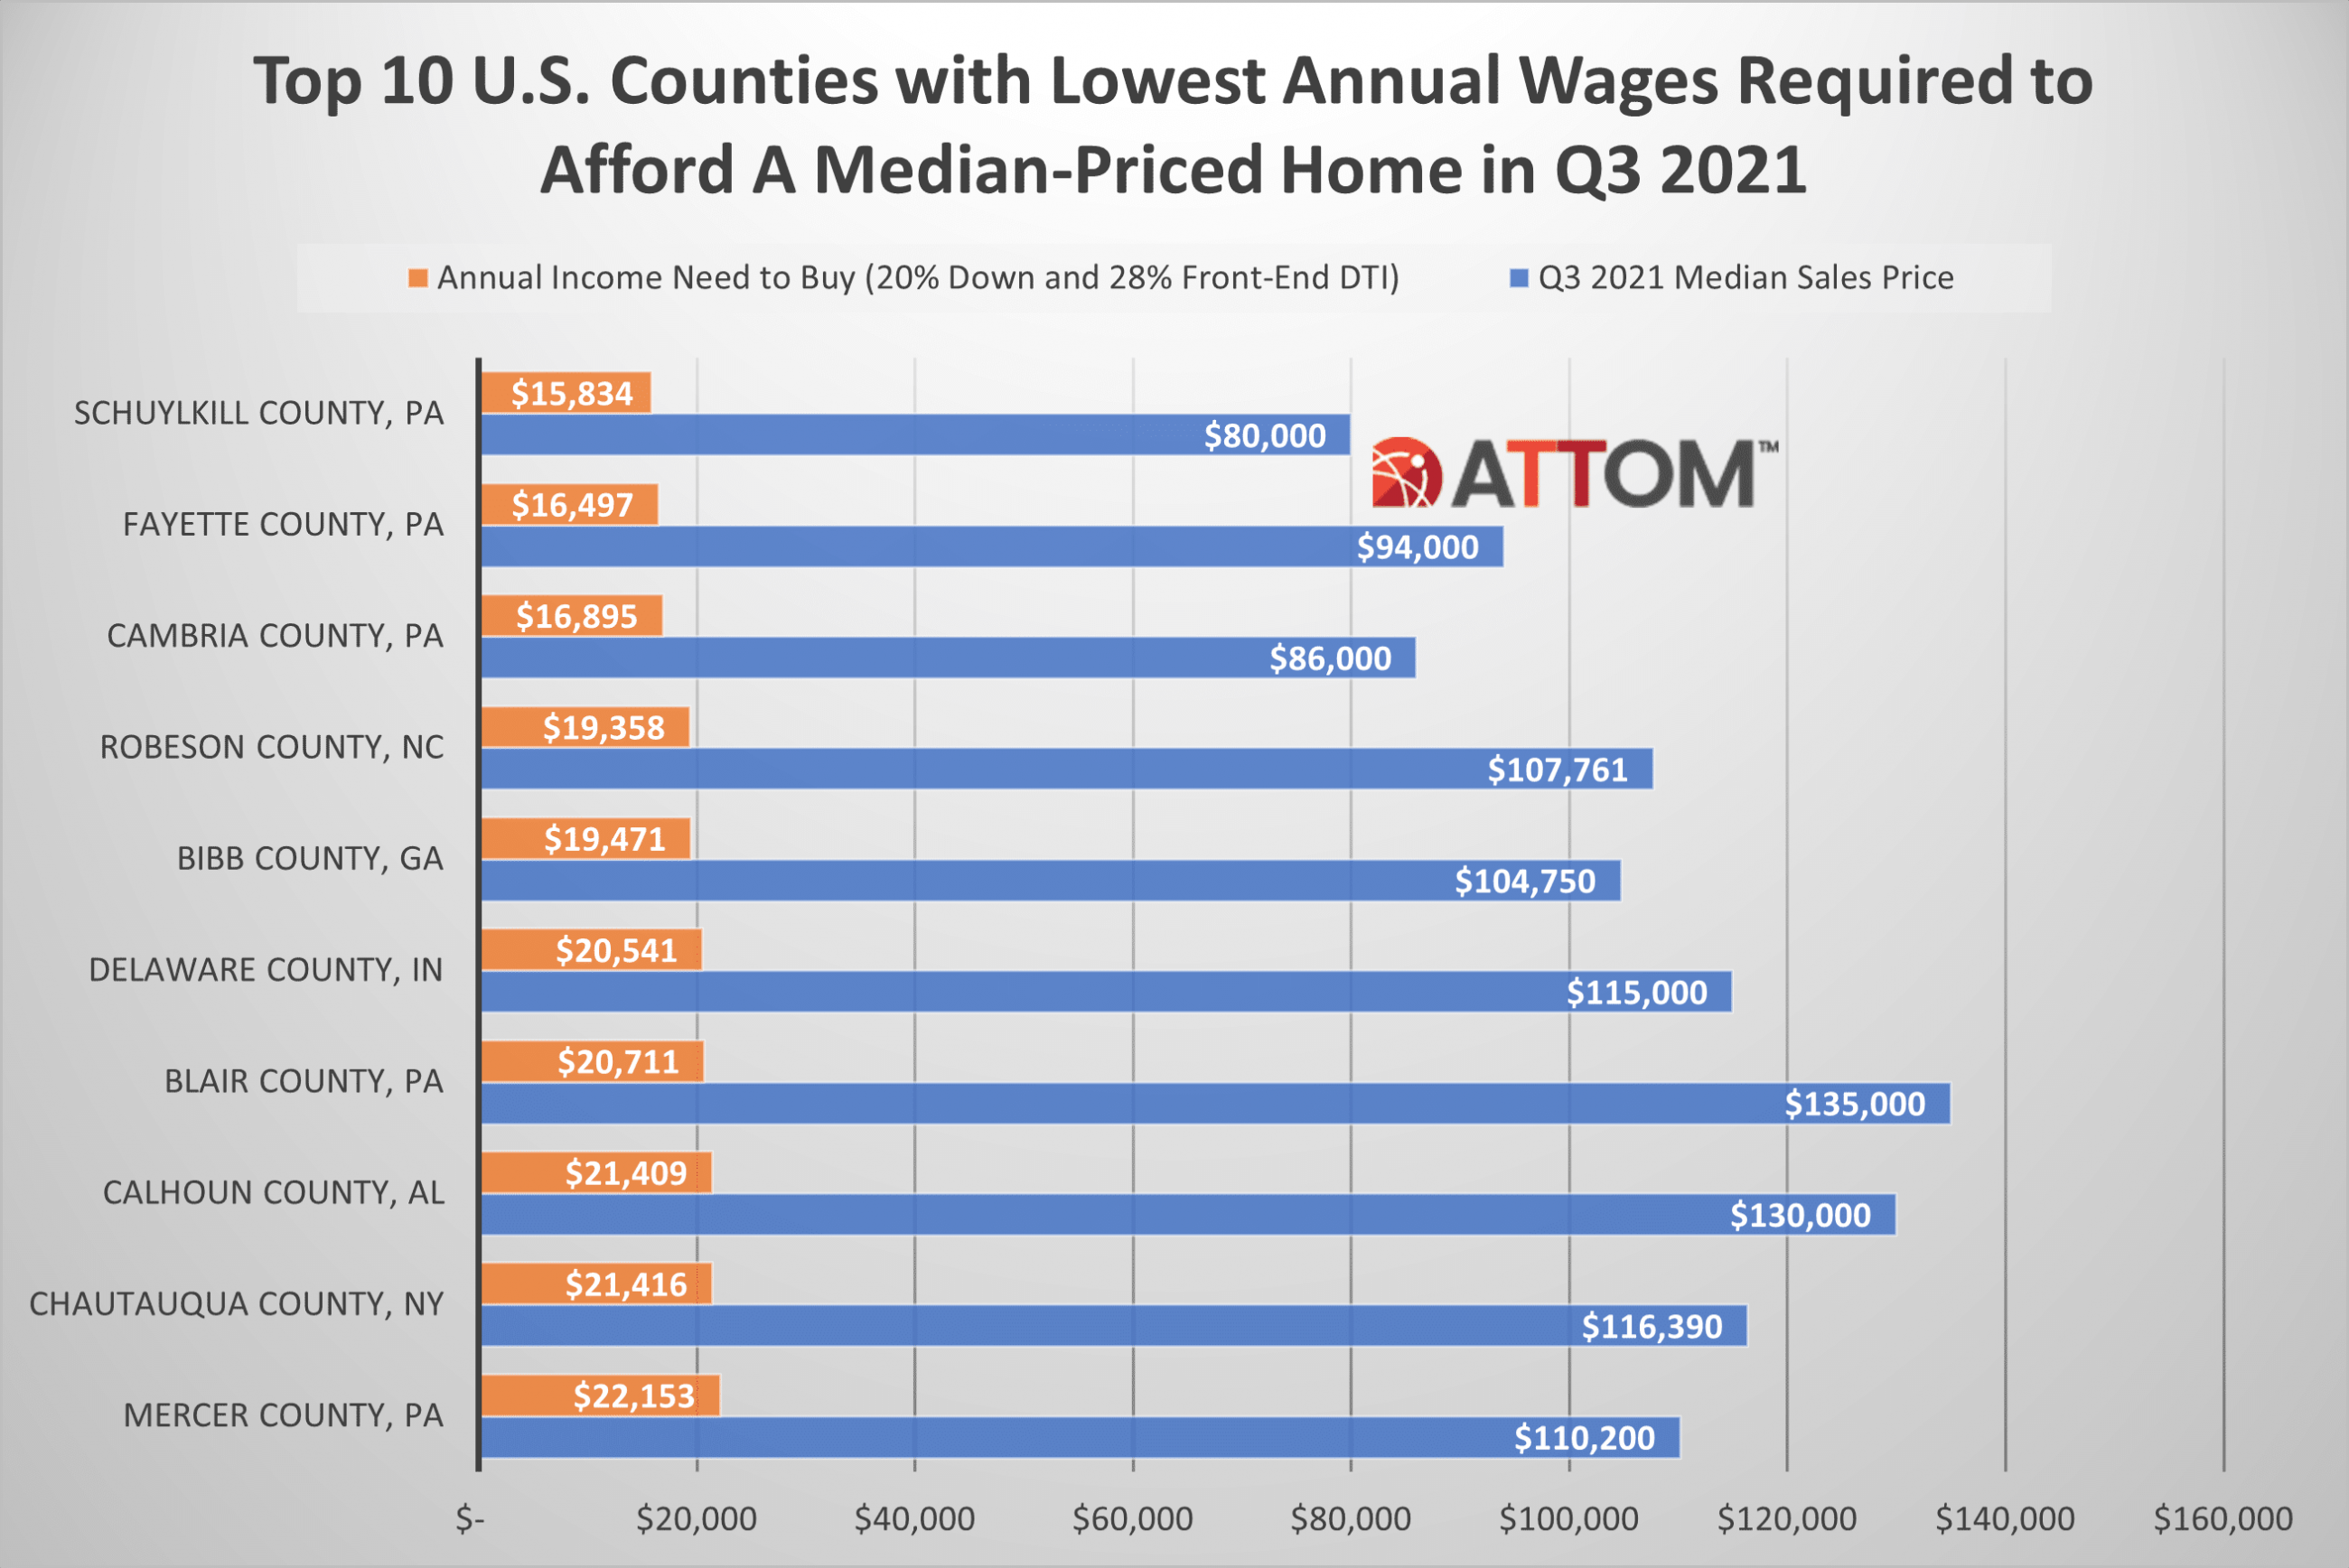 Bar chart showing the top 10 U.S. counties with the lowest annual wages to afford a median-priced home.